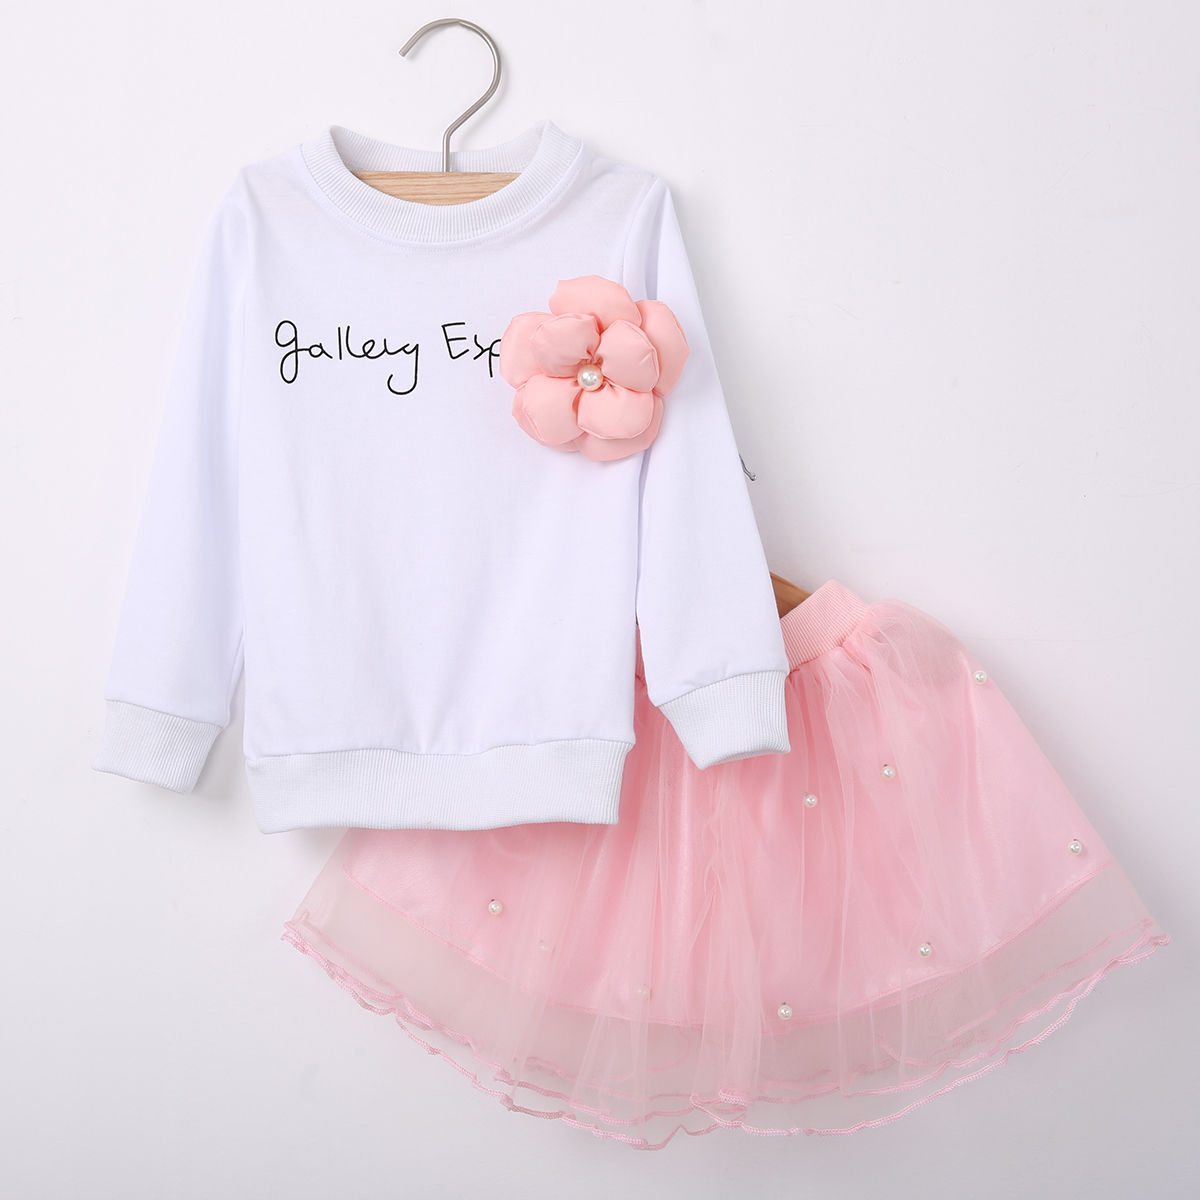 Princess Toddler Infant Baby Girls Tops T shirt Tulle Skirts 2pcs Outfits Set Dresses Floral Clothes